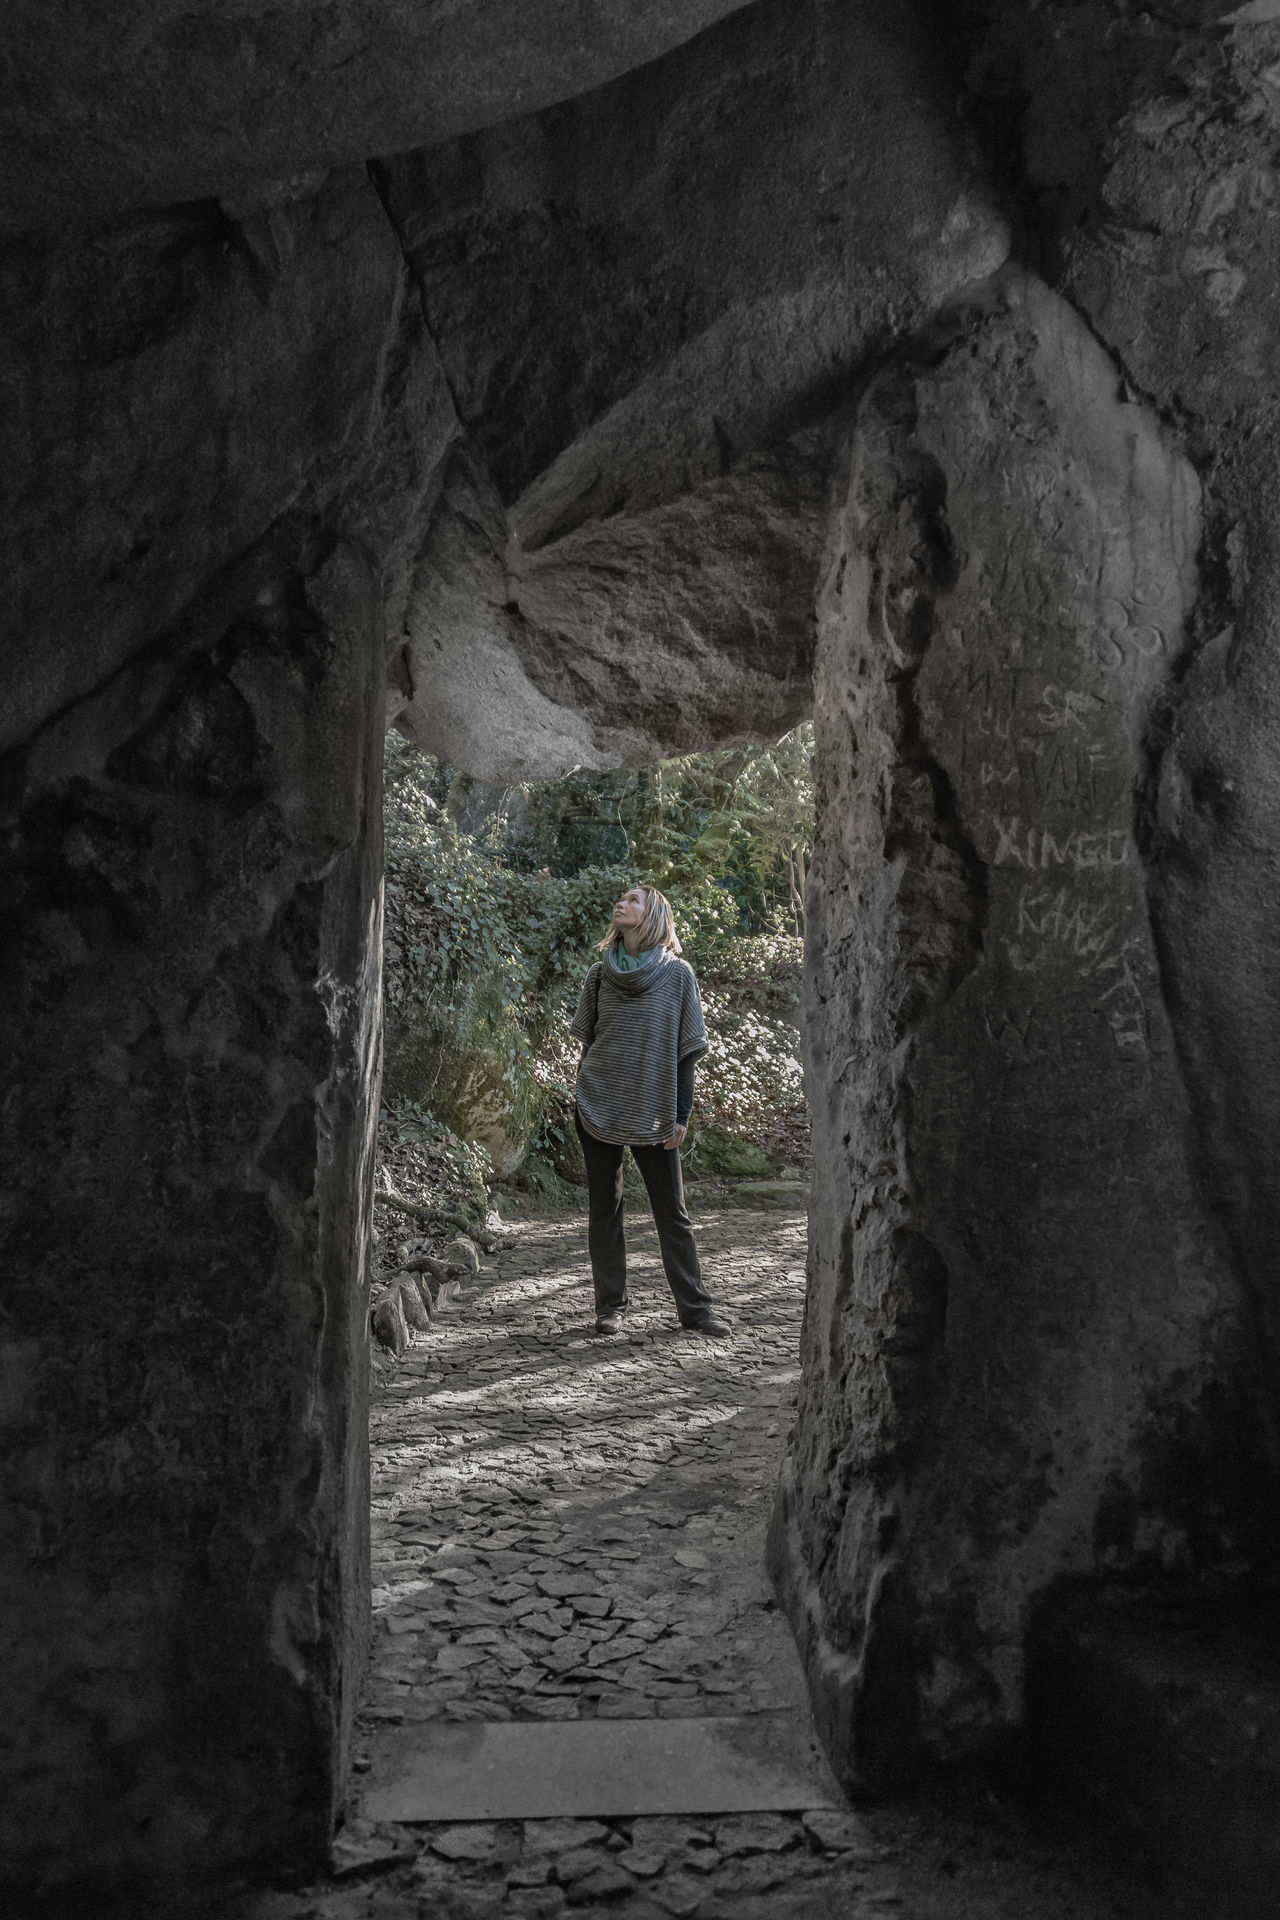 Cave Contemplation Framed Gardens Grotto Nature Outdoors Sintrasecrets Woman